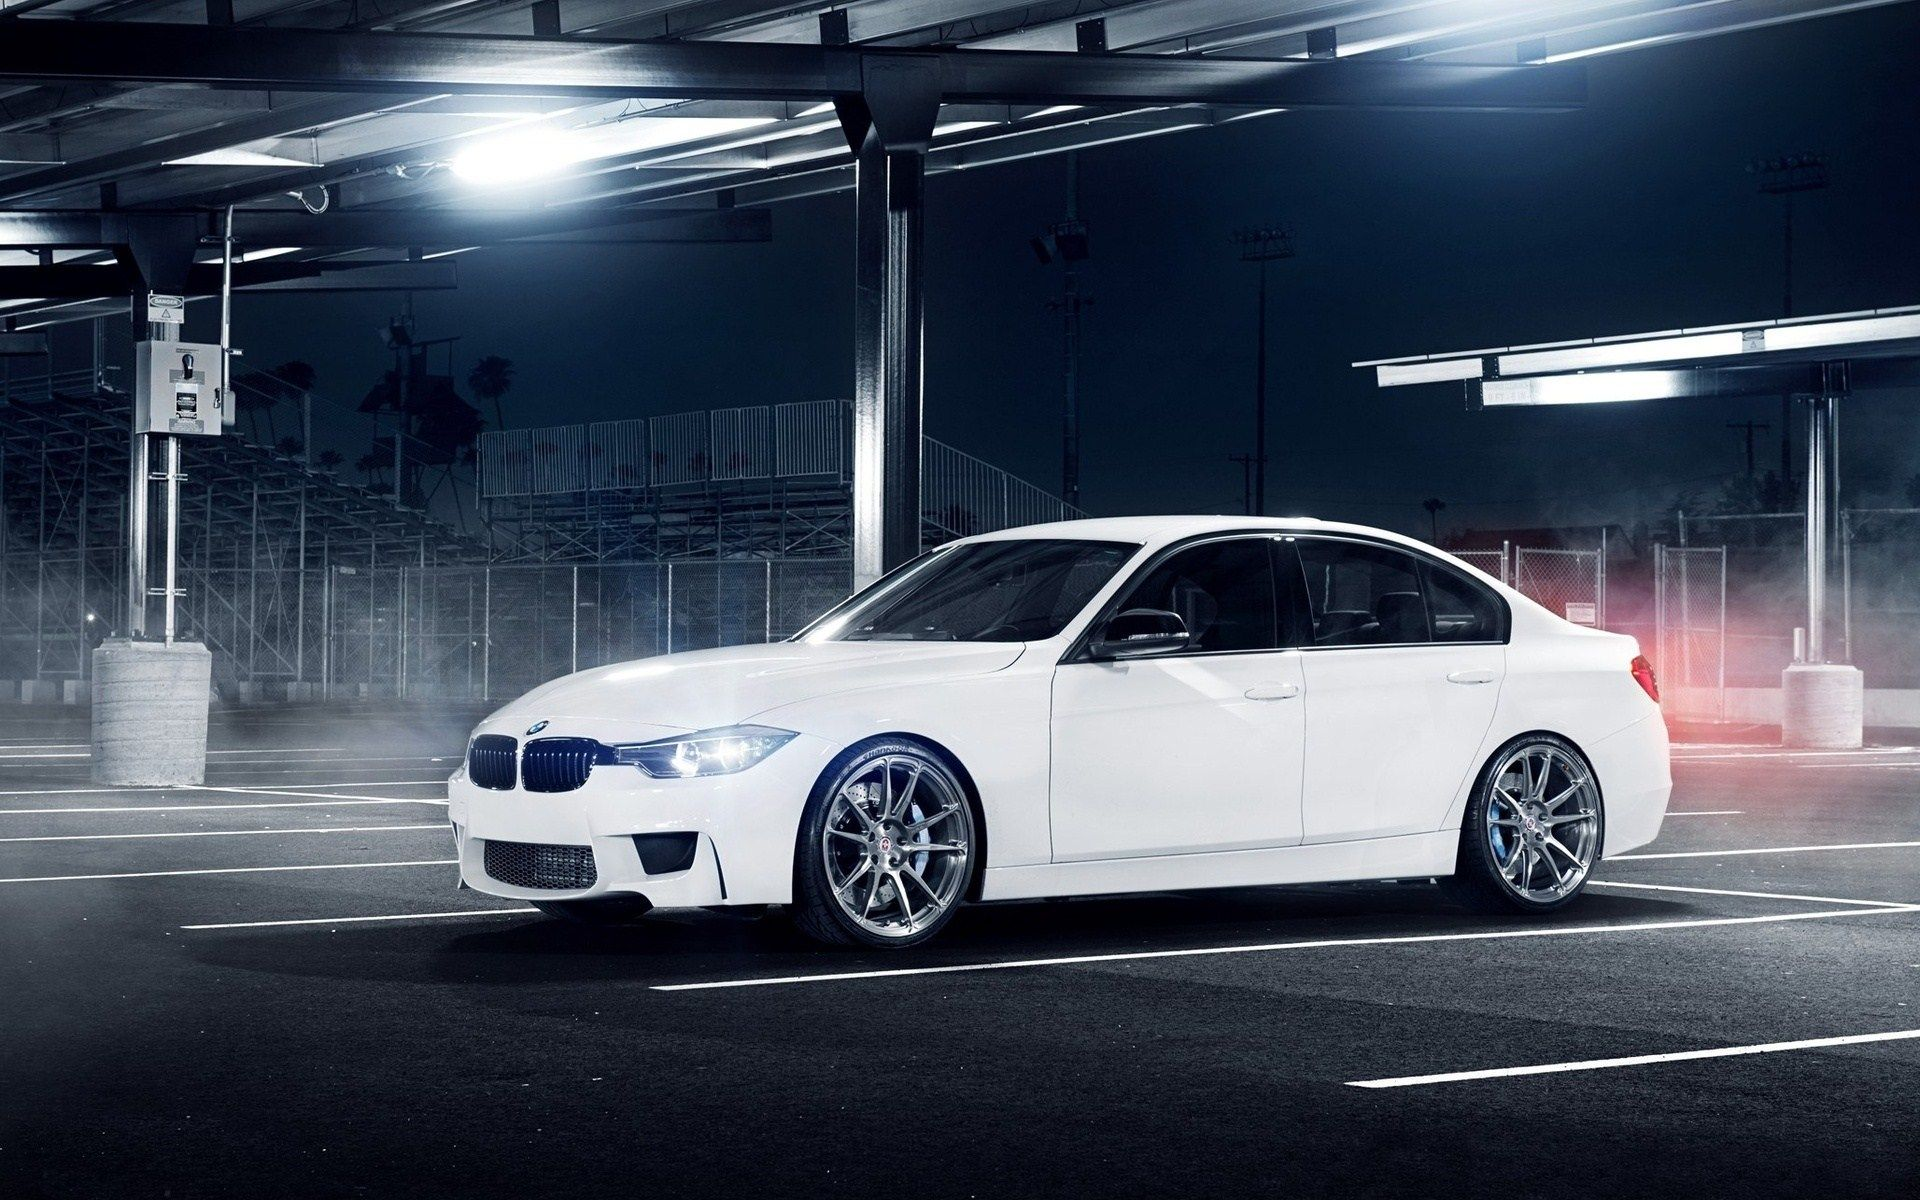 BMW F30 Wallpapers - Wallpaper Cave